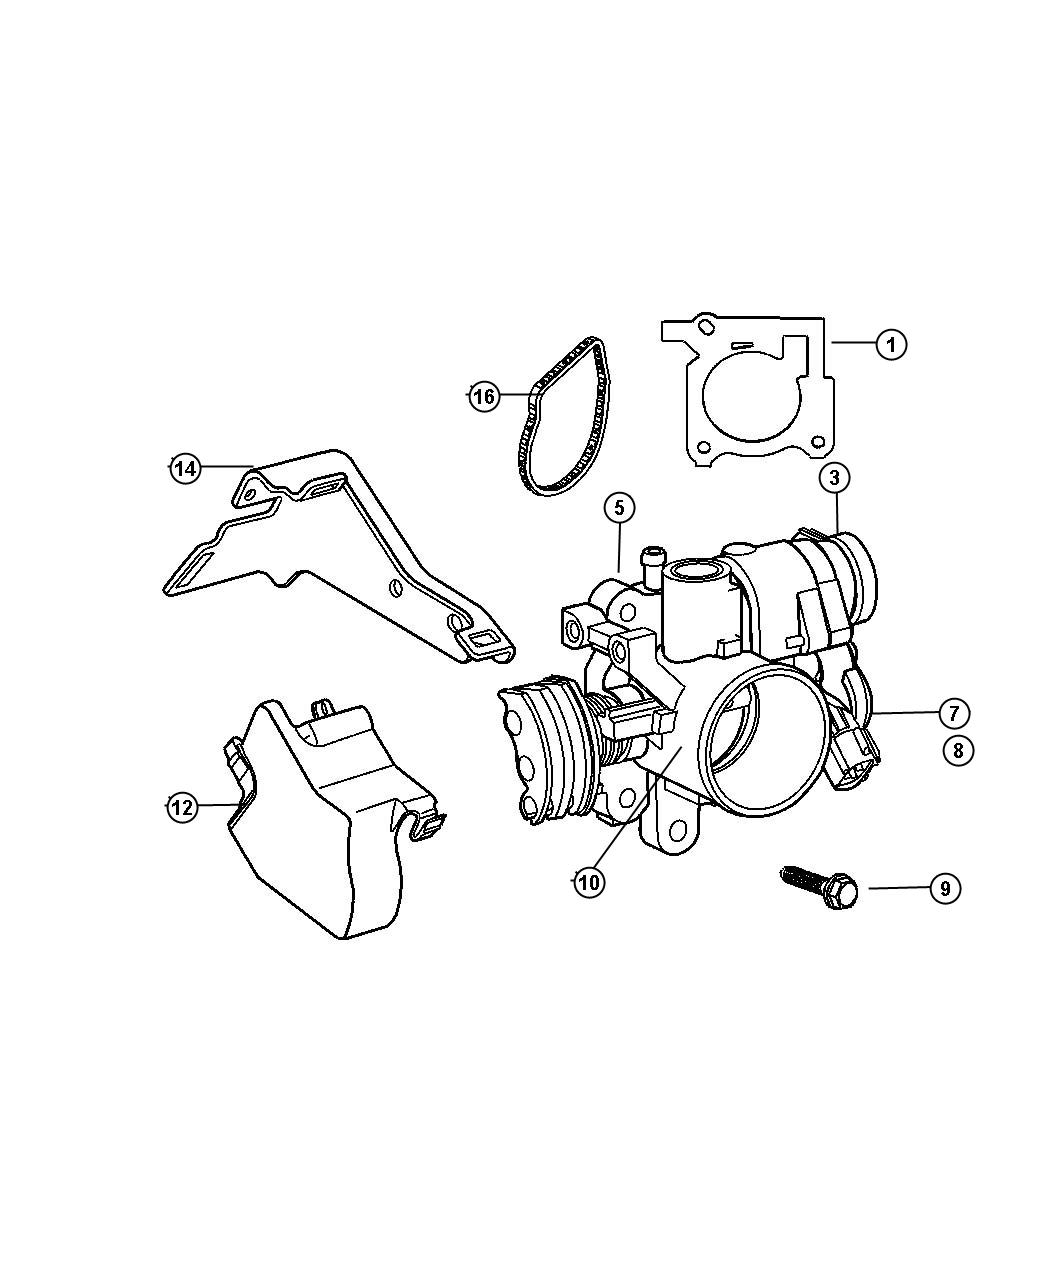 Dodge Neon Solenoid kit. Linear iacv. Consists of